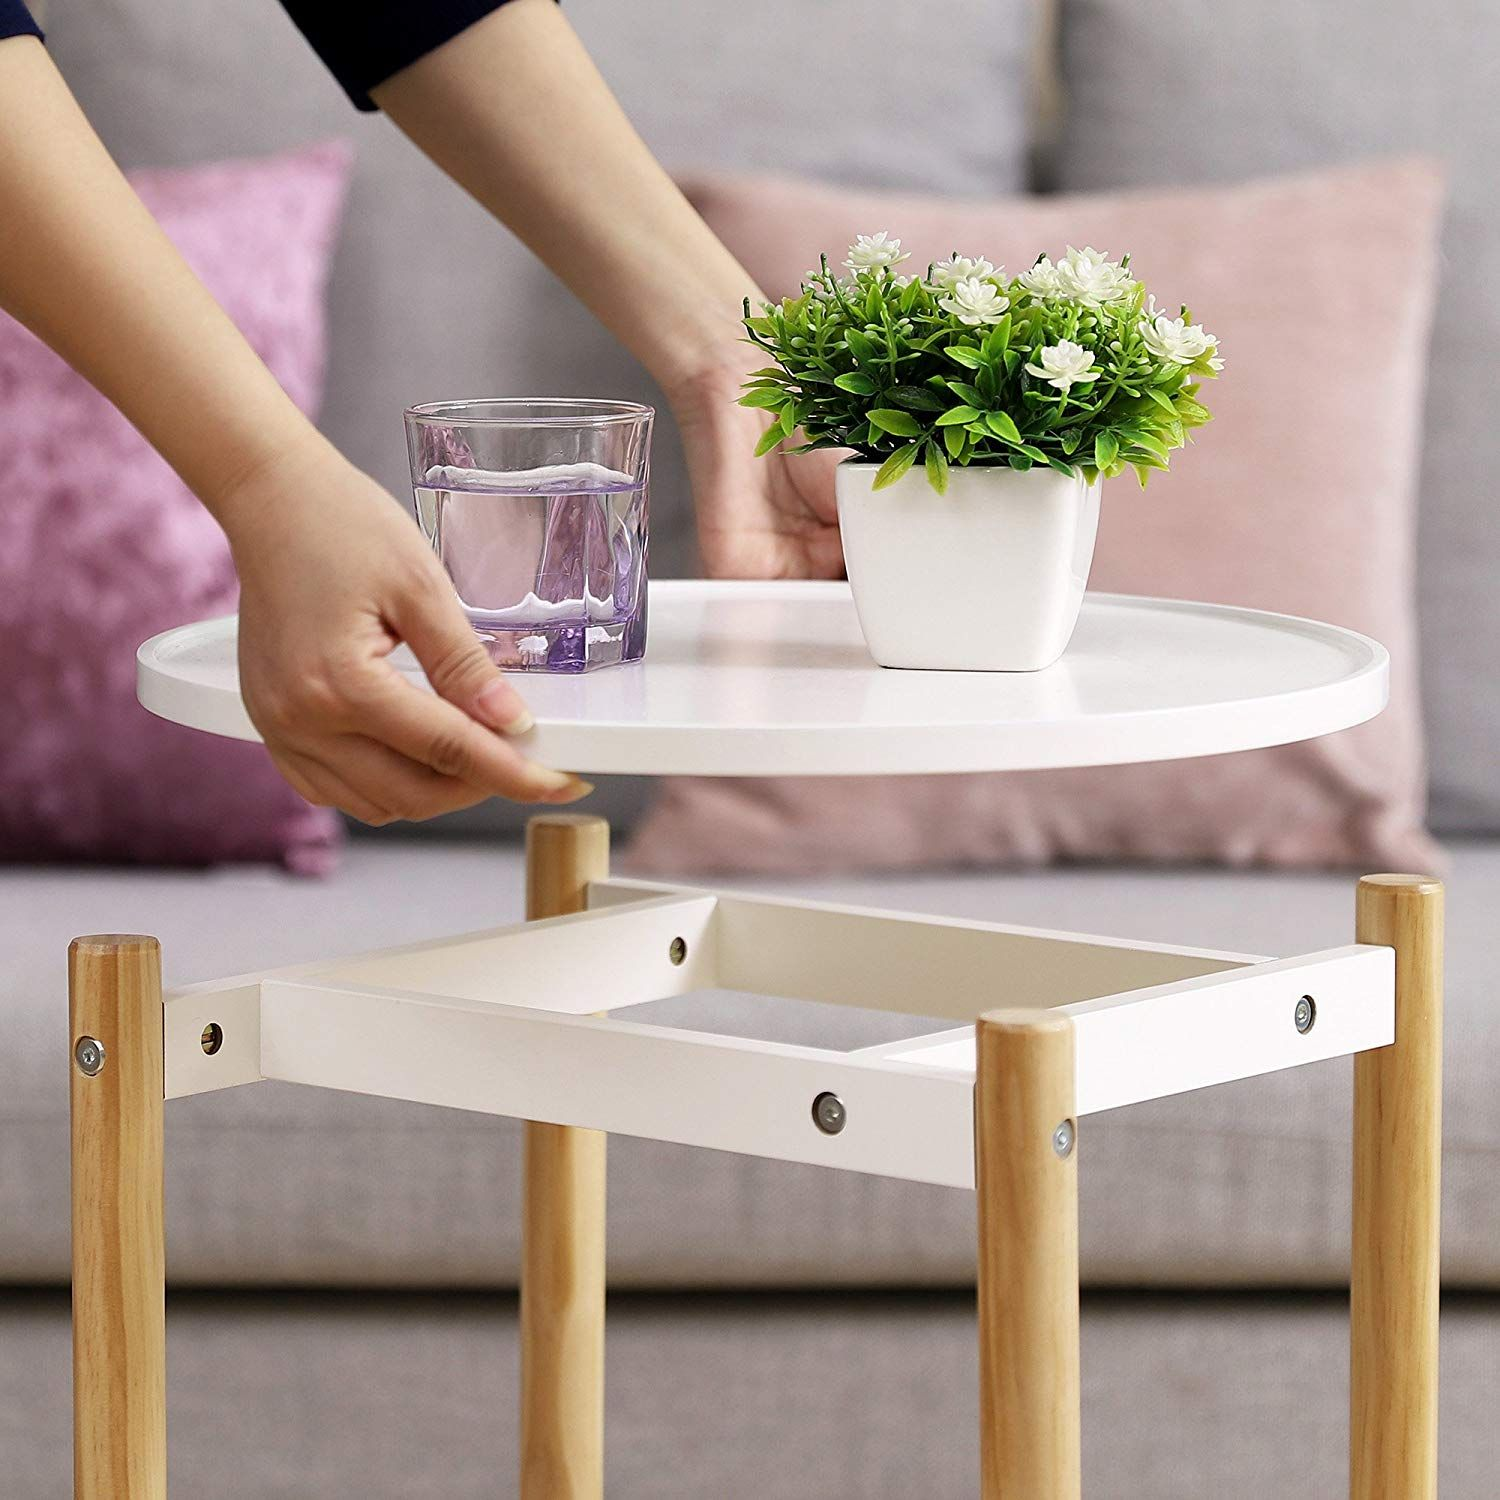 Double Your Space With This 2 Level Side Table You Ll Gain Twice As Much Space With Images Side Table Room Living Room